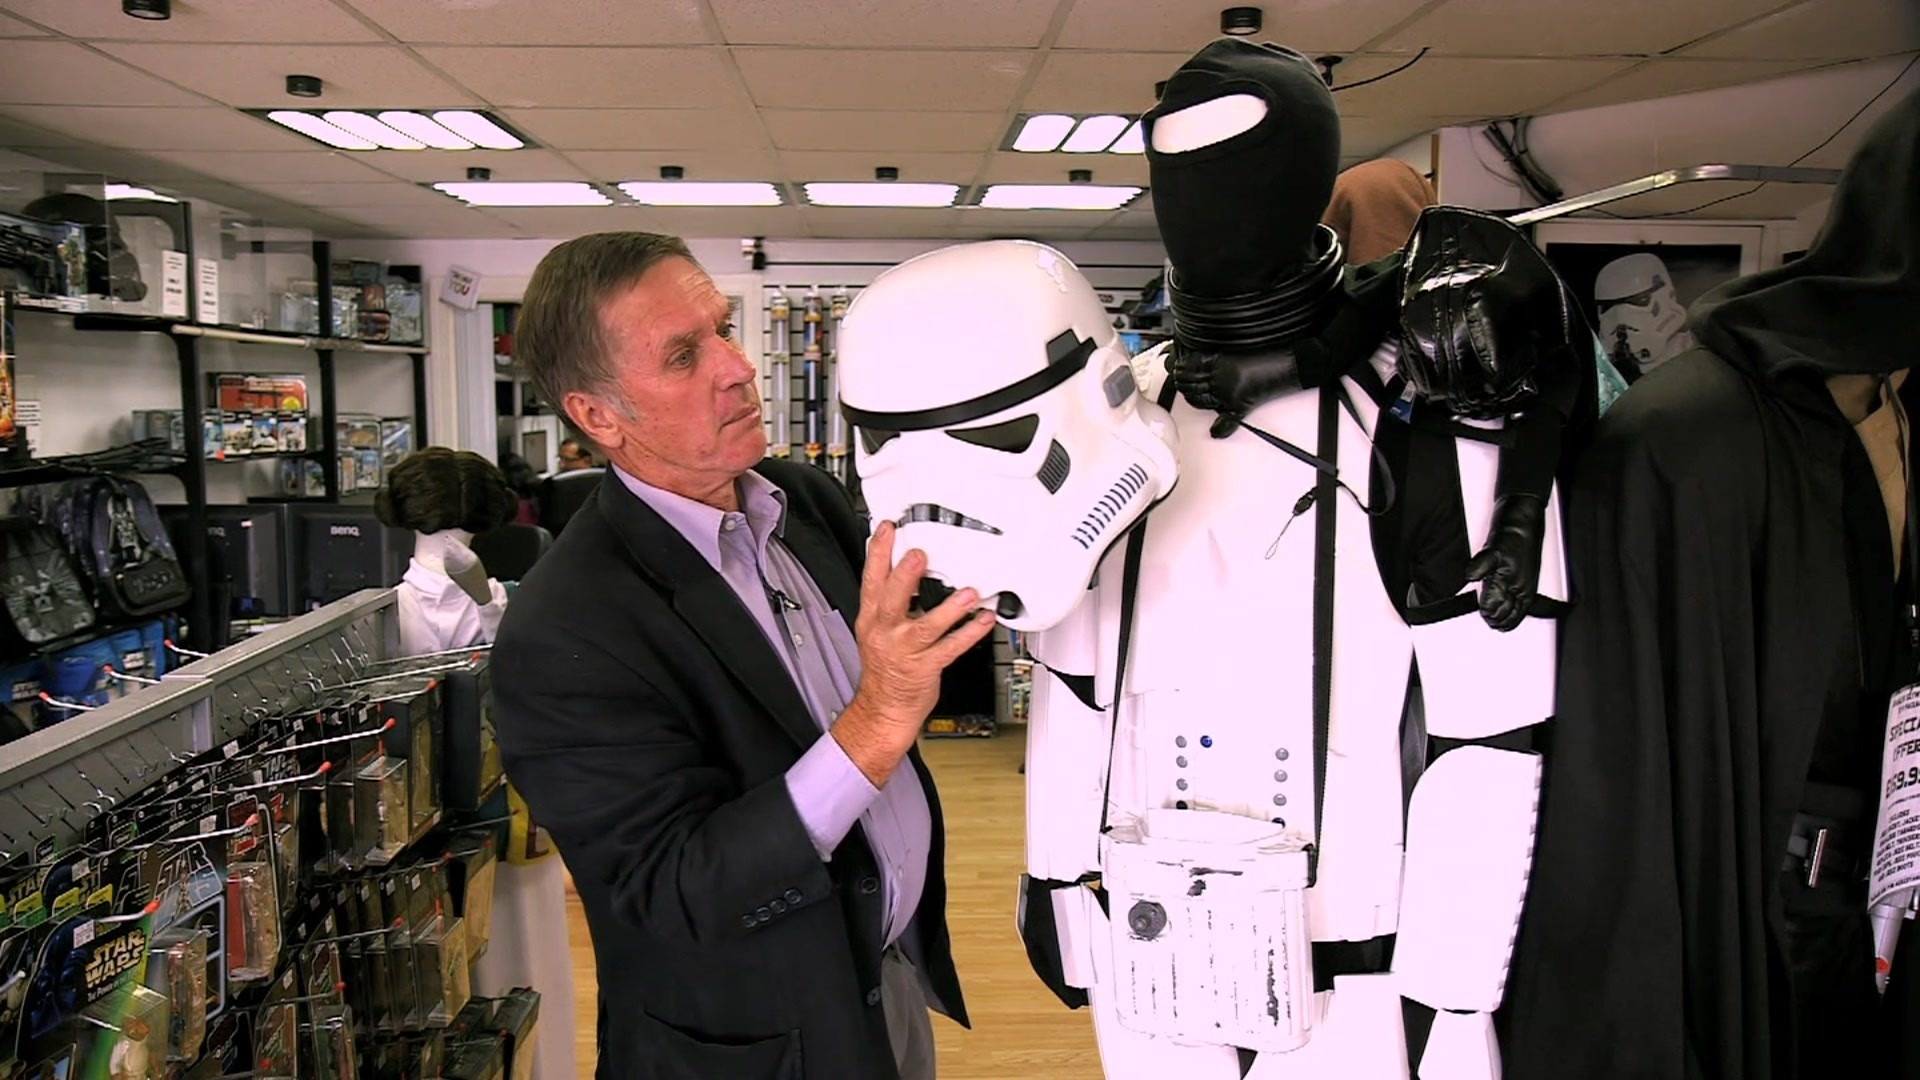 Laurie Goode with a Stormtrooper outfit